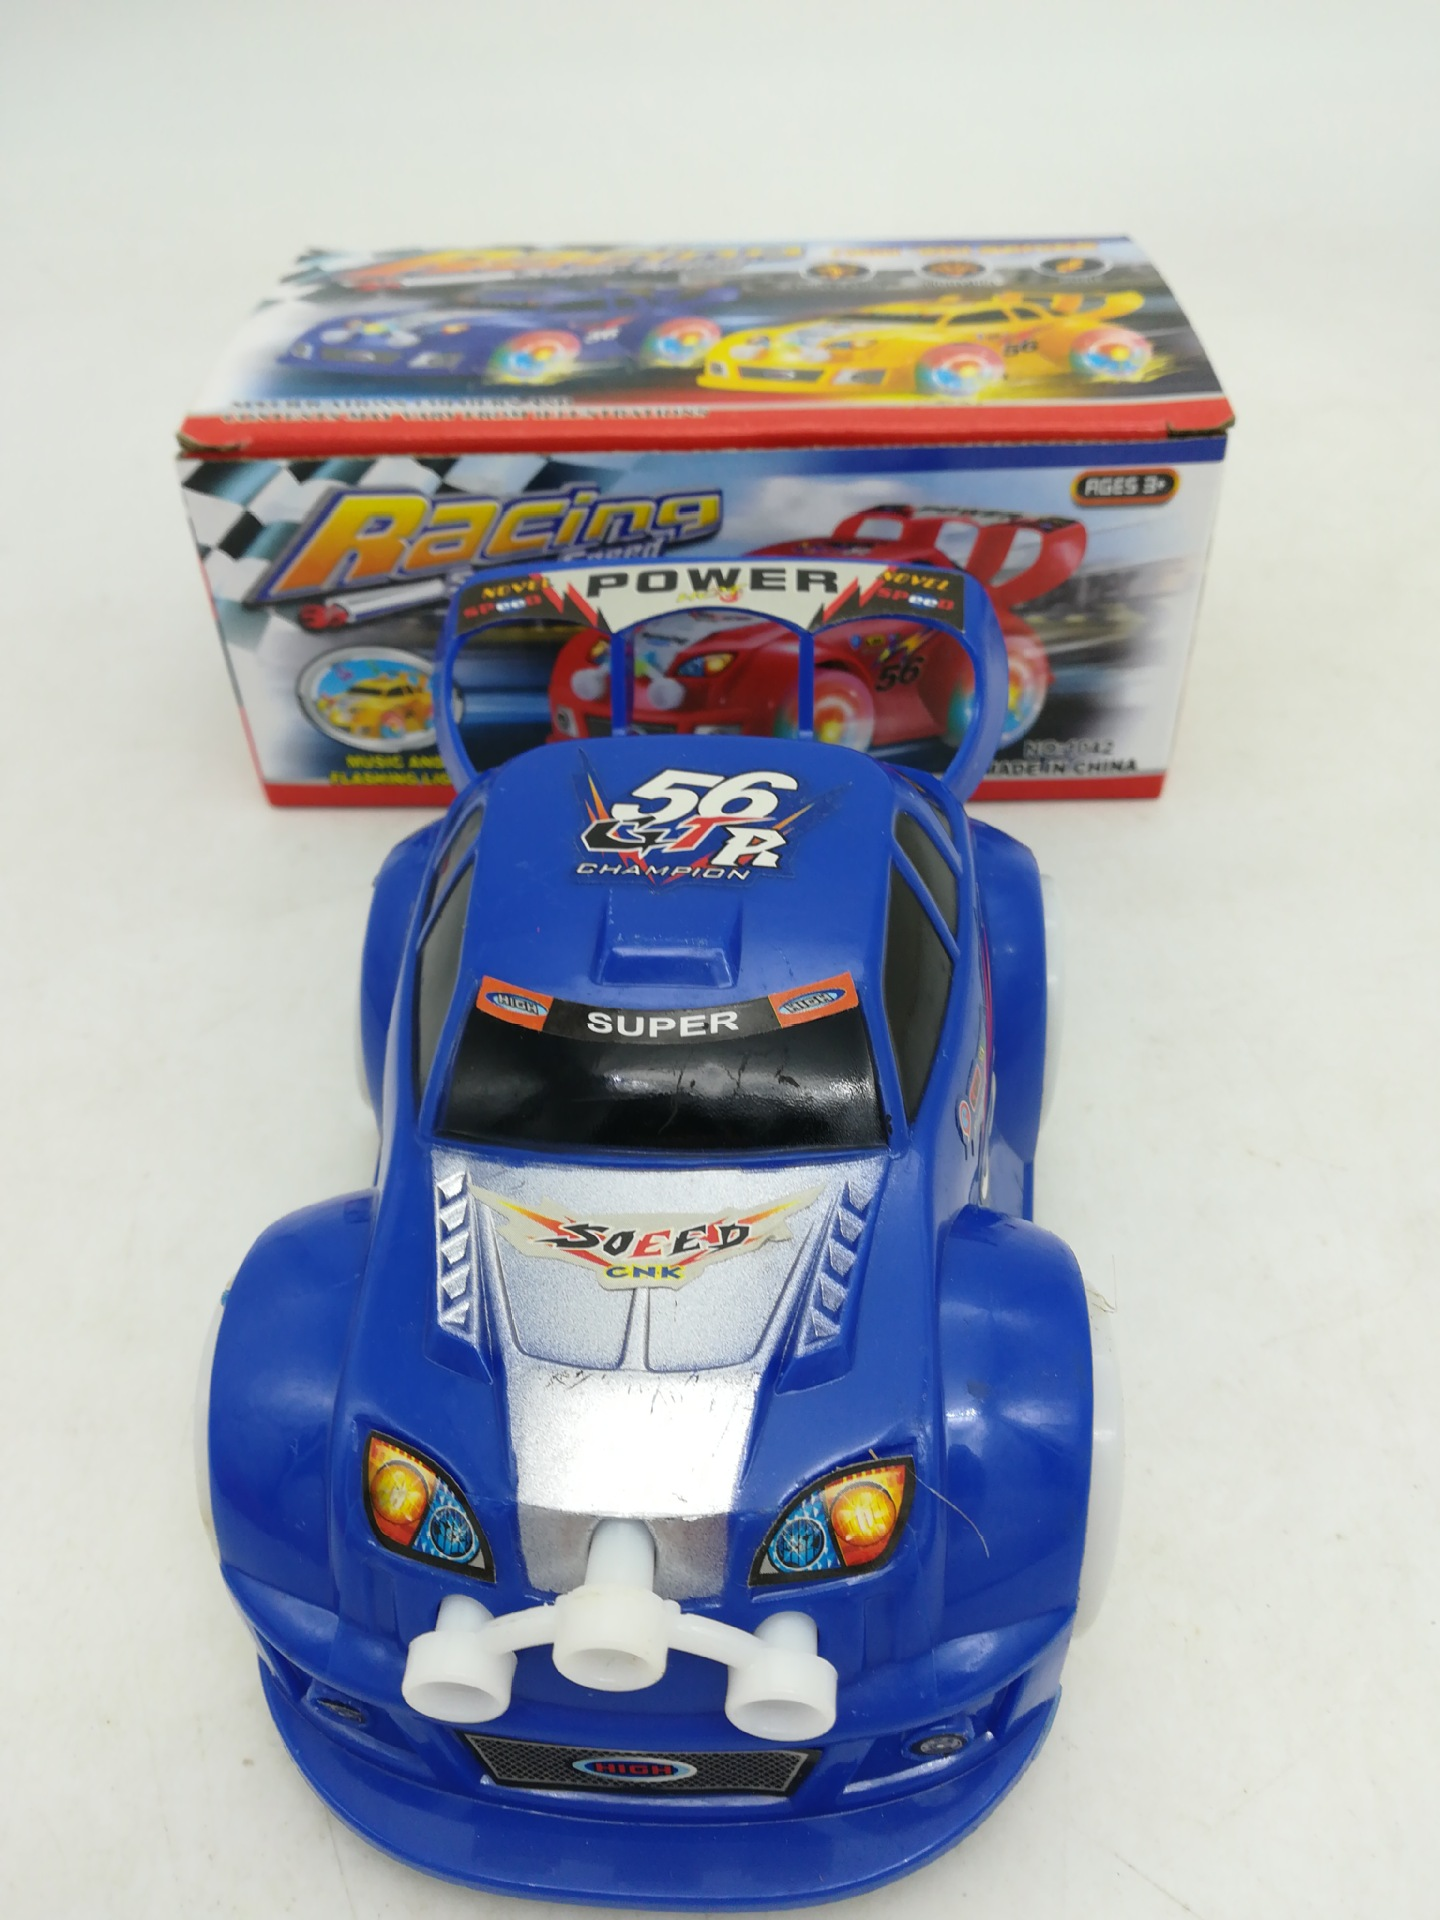 Super Cool Toy Car Little Boy Toy Special Offer Universal Light And Sound Race Car Street Vendor Toy